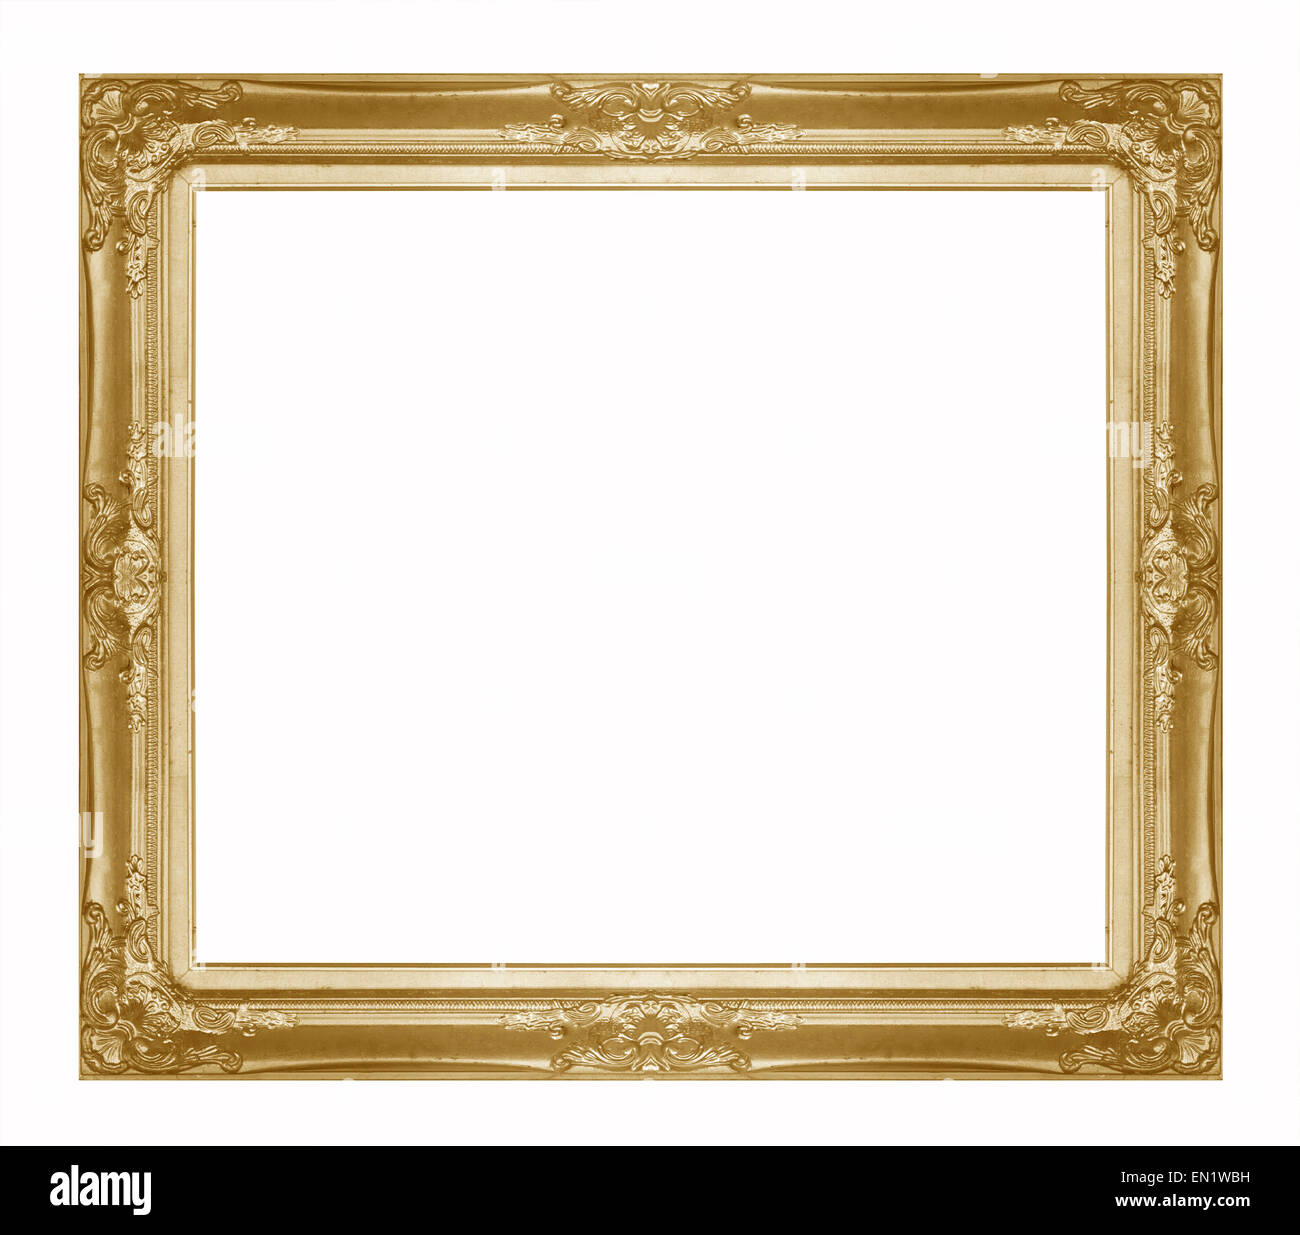 Golden Picture Frame Cutout Stockfotos & Golden Picture Frame Cutout ...